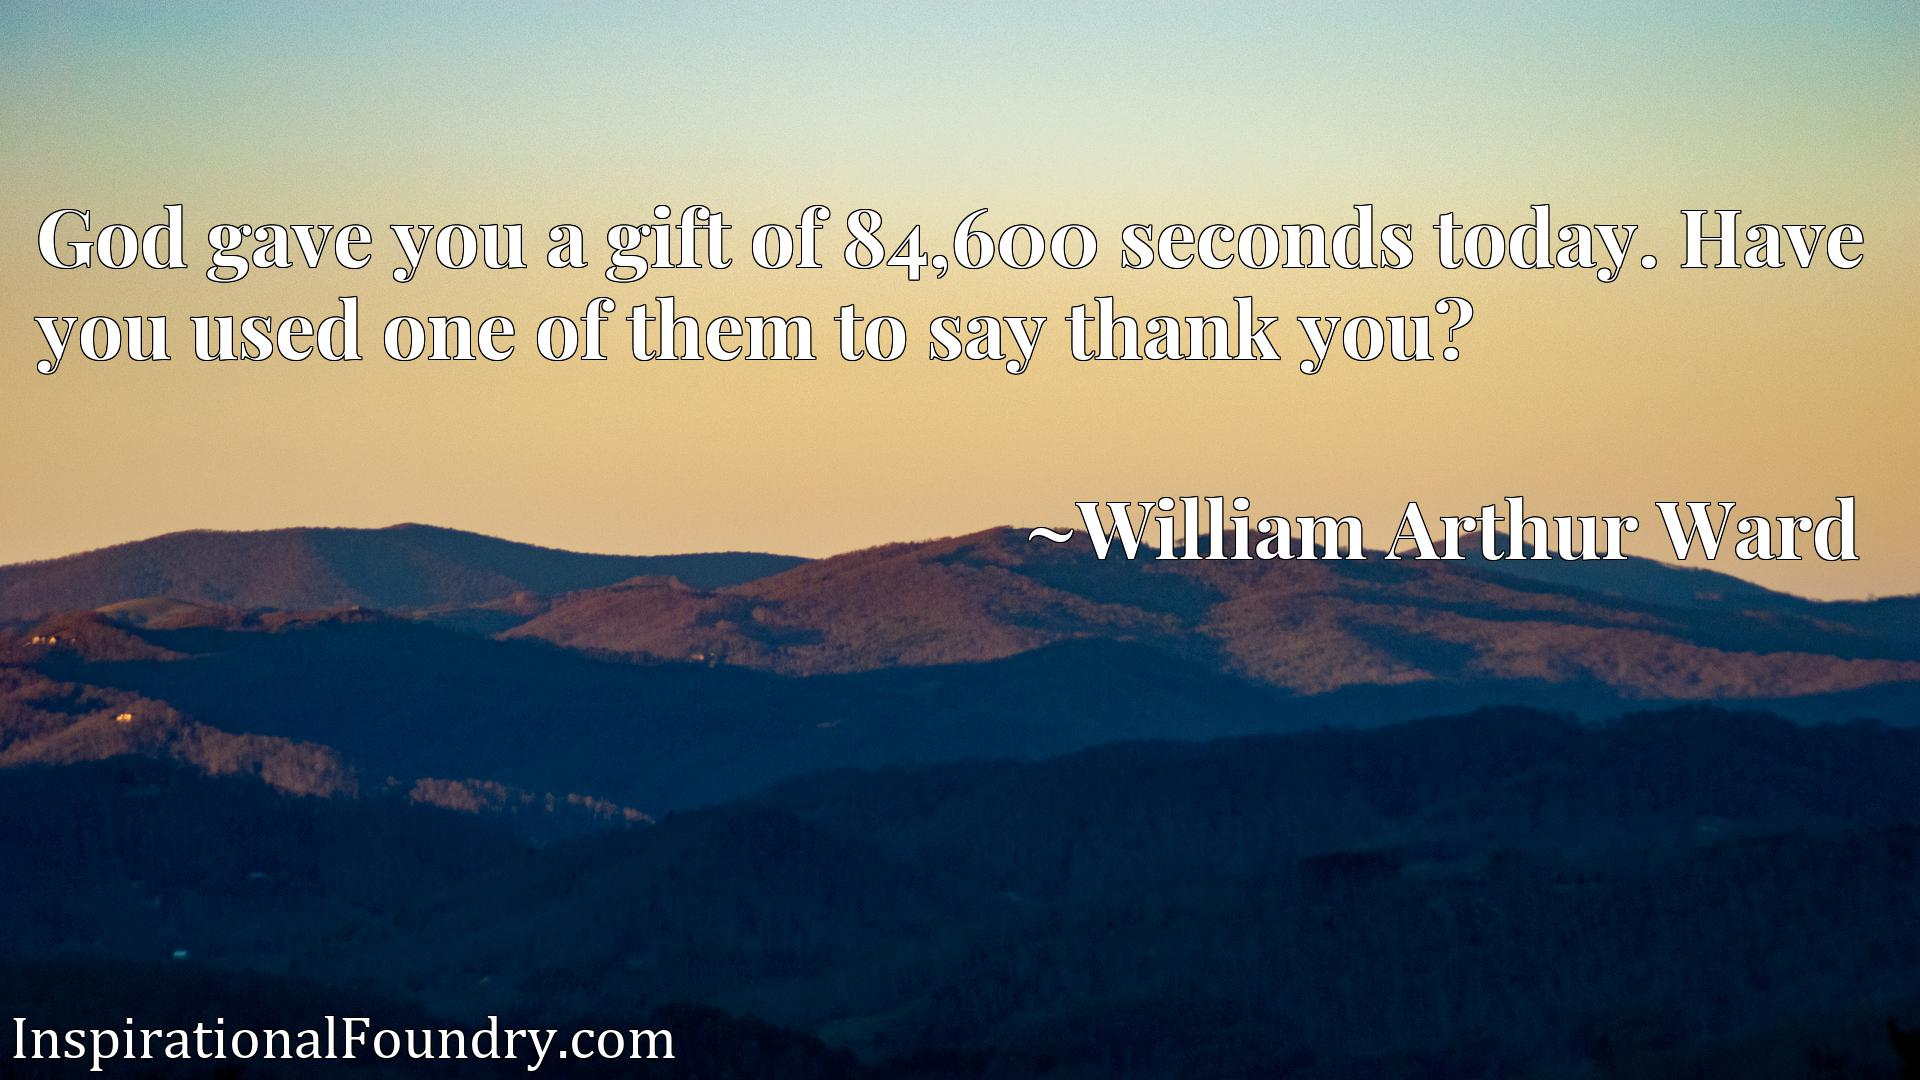 Quote Picture :God gave you a gift of 84,600 seconds today. Have you used one of them to say thank you?